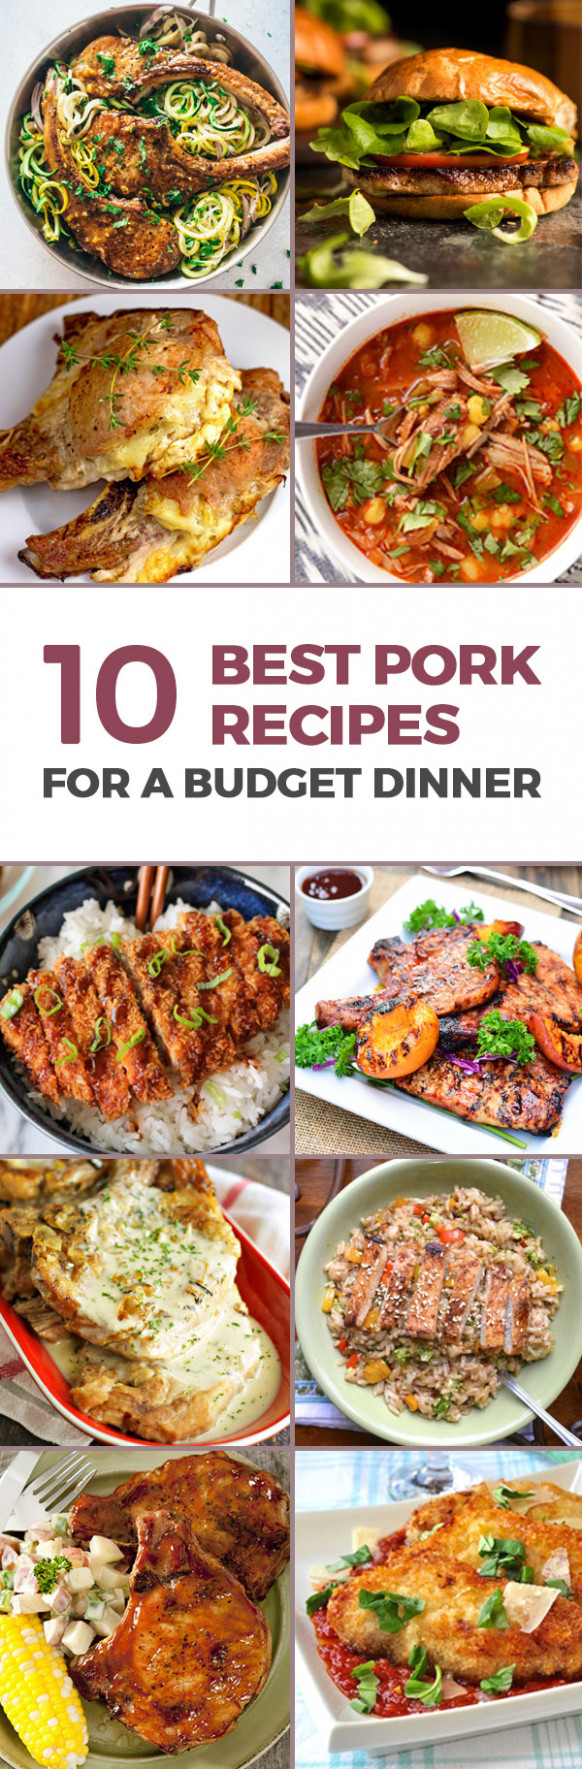 14 Best Pork Chop Recipes For A Budget Dinner - dinner recipes on a budget